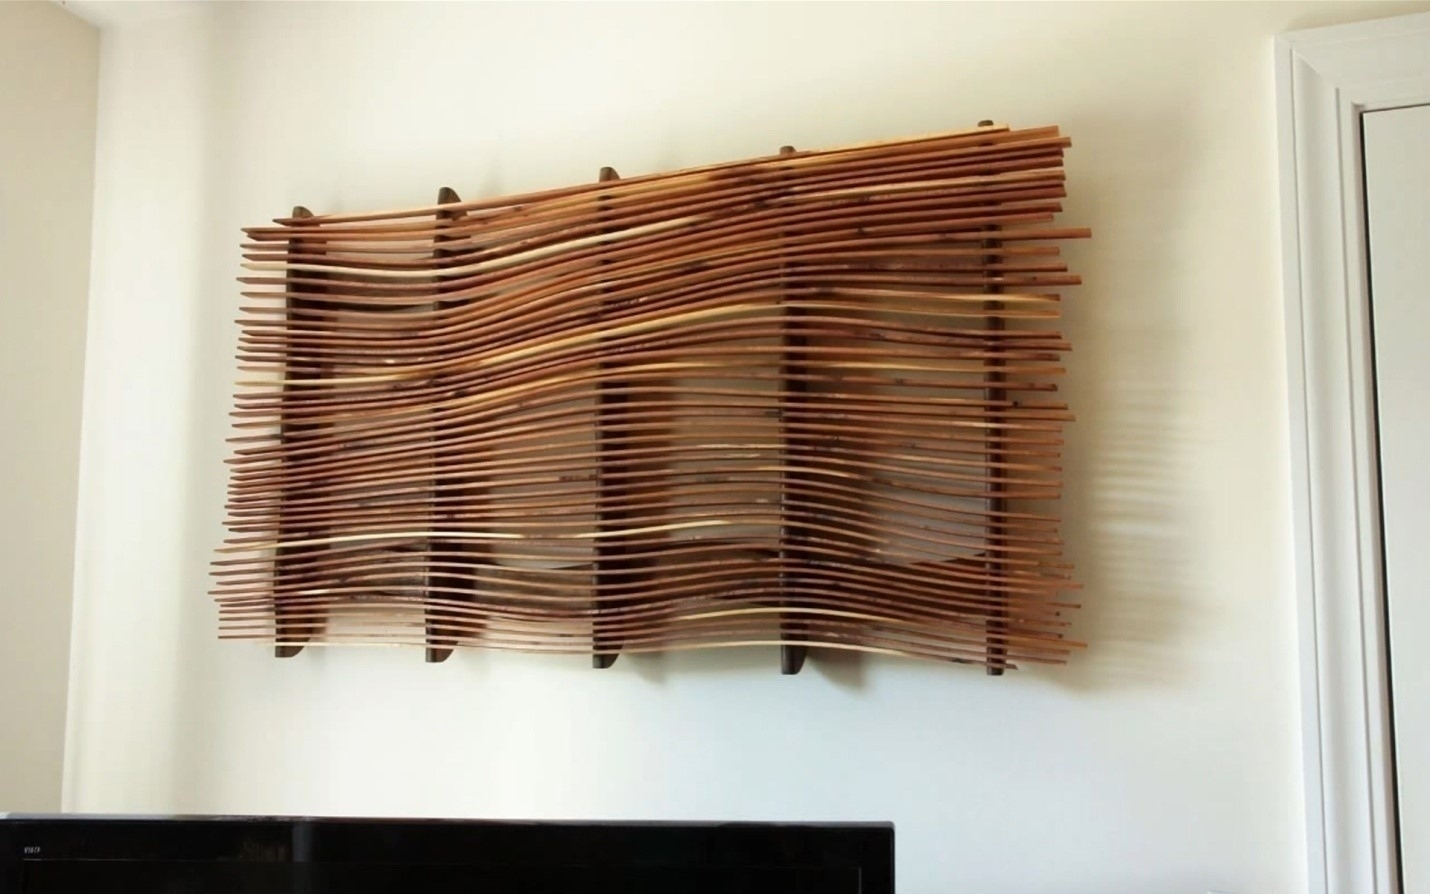 How To Make Wall Art From Scrap Wood | Diy Project – Cut The Wood For Most Popular Wood Wall Art Diy (Gallery 7 of 15)